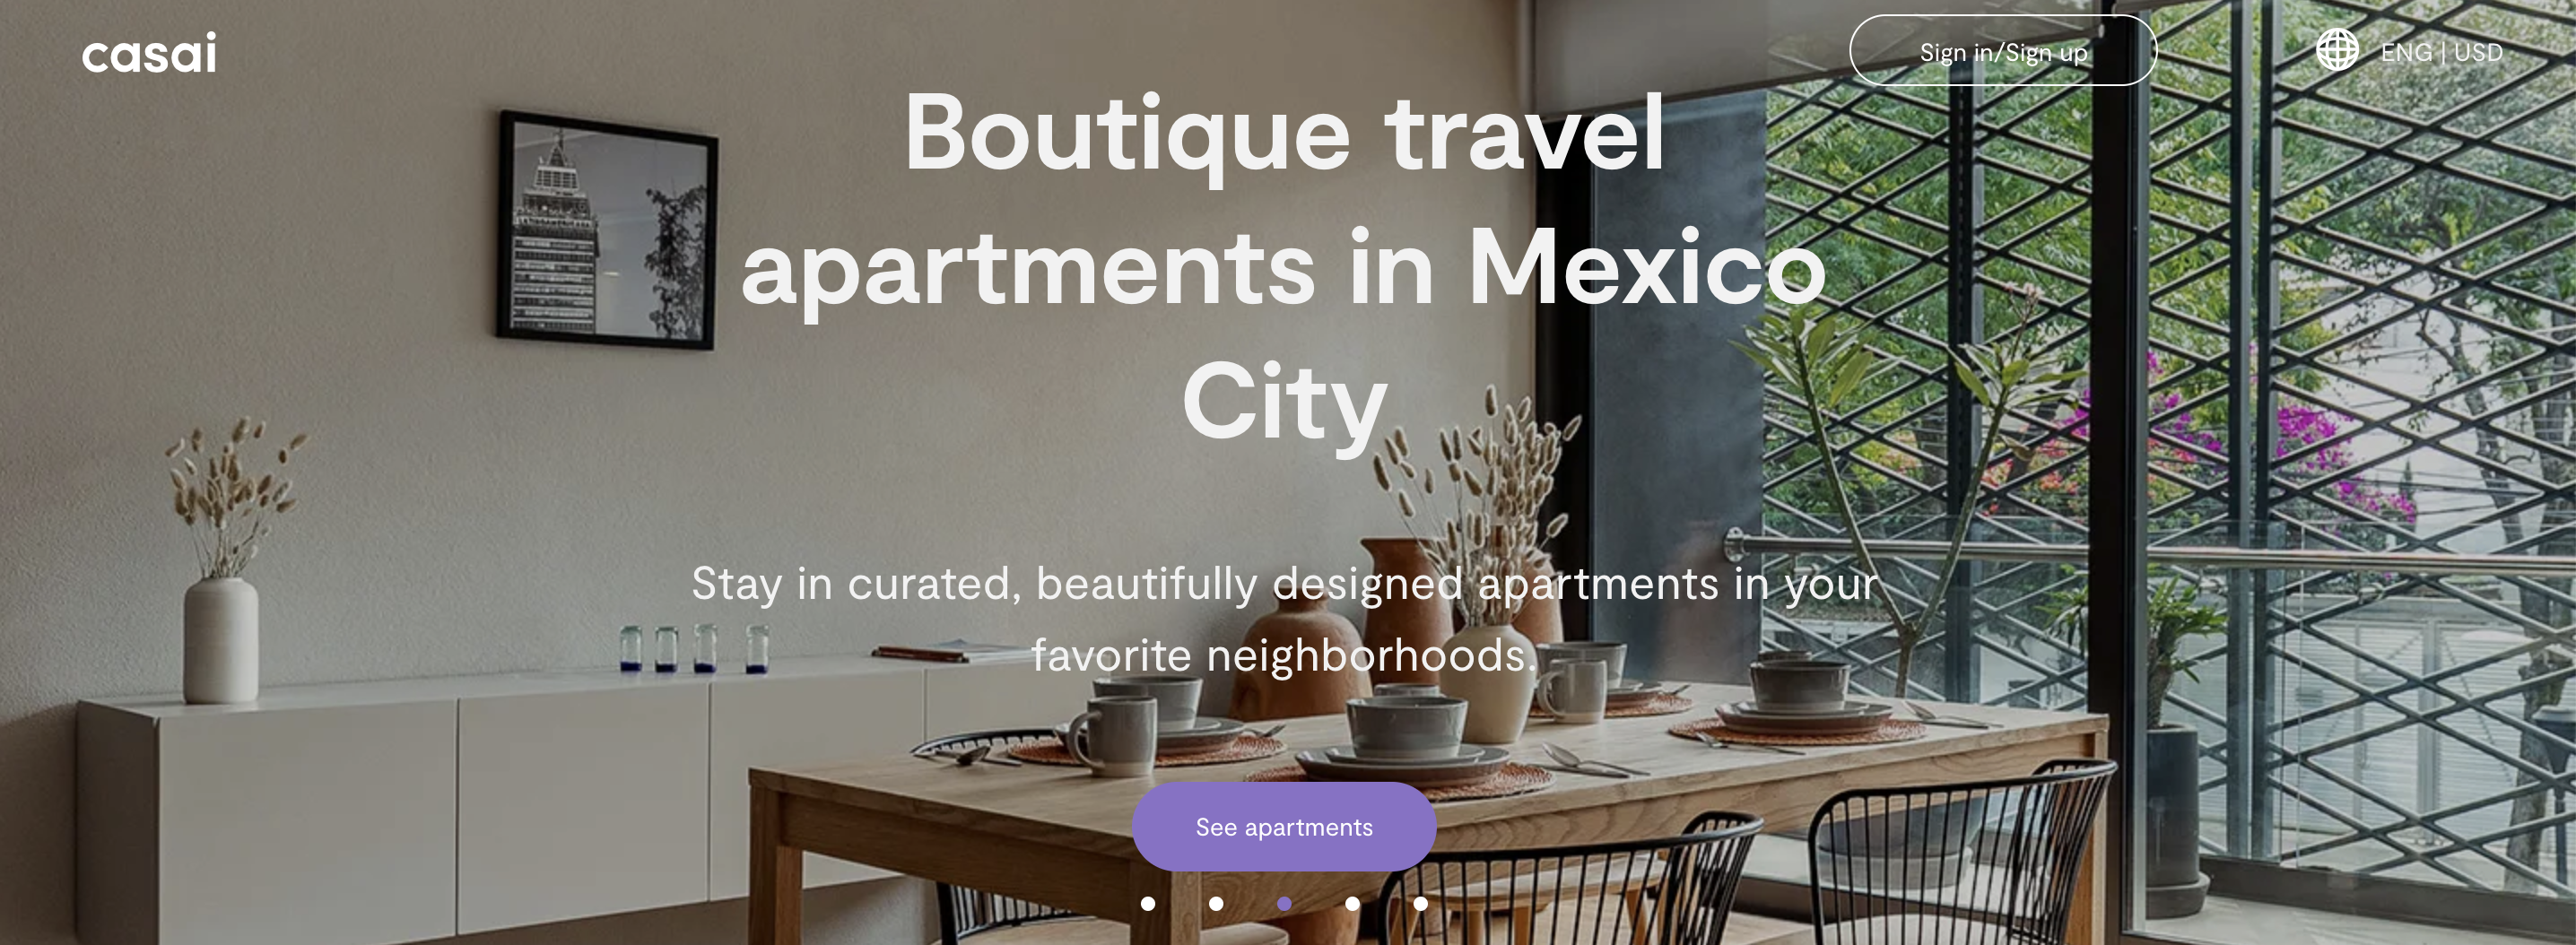 MERGING AIRBNB AND THE TRADITIONAL HOTEL MODEL, MEXICO CITY'S CASAI RAISES $23 MILLION TO GROW IN LATIN AMERICA – TECHCRUNCH